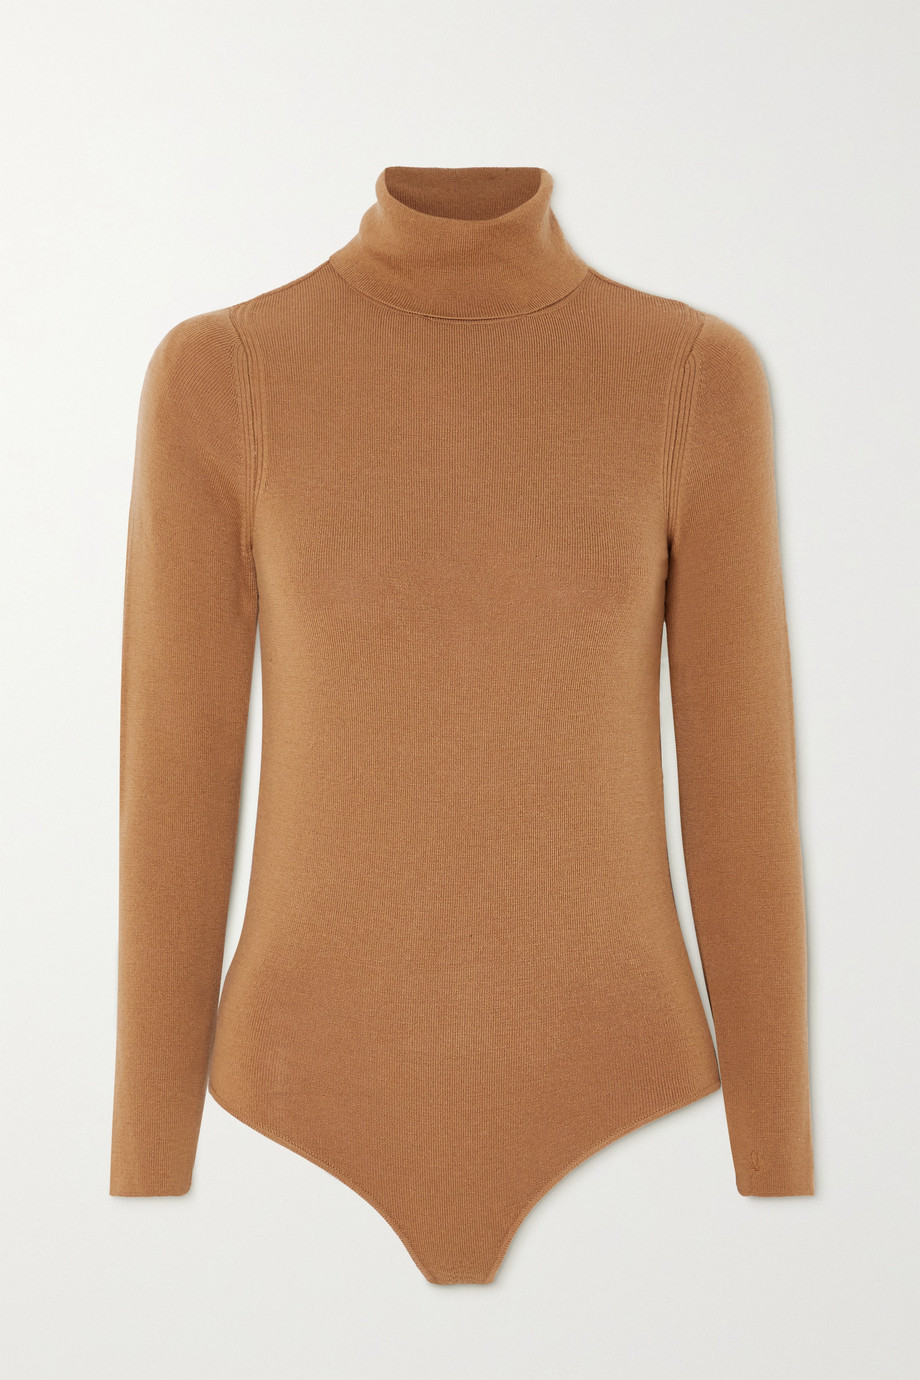 LOULOU STUDIO Galora wool turtleneck bodysuit